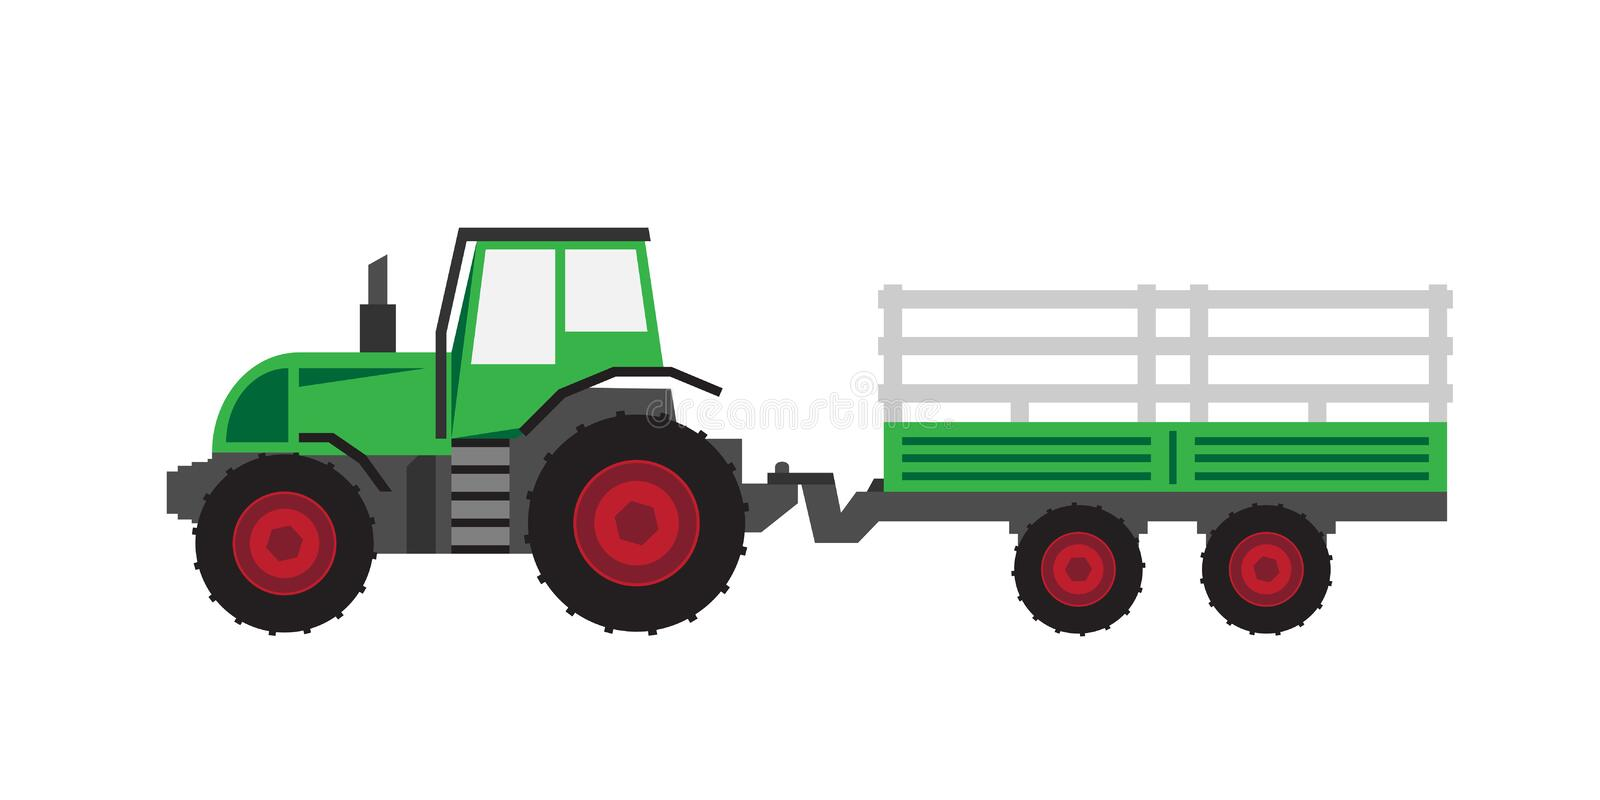 Tractor Trailer Clip Art : Green tractor with trailer stock vector illustration of